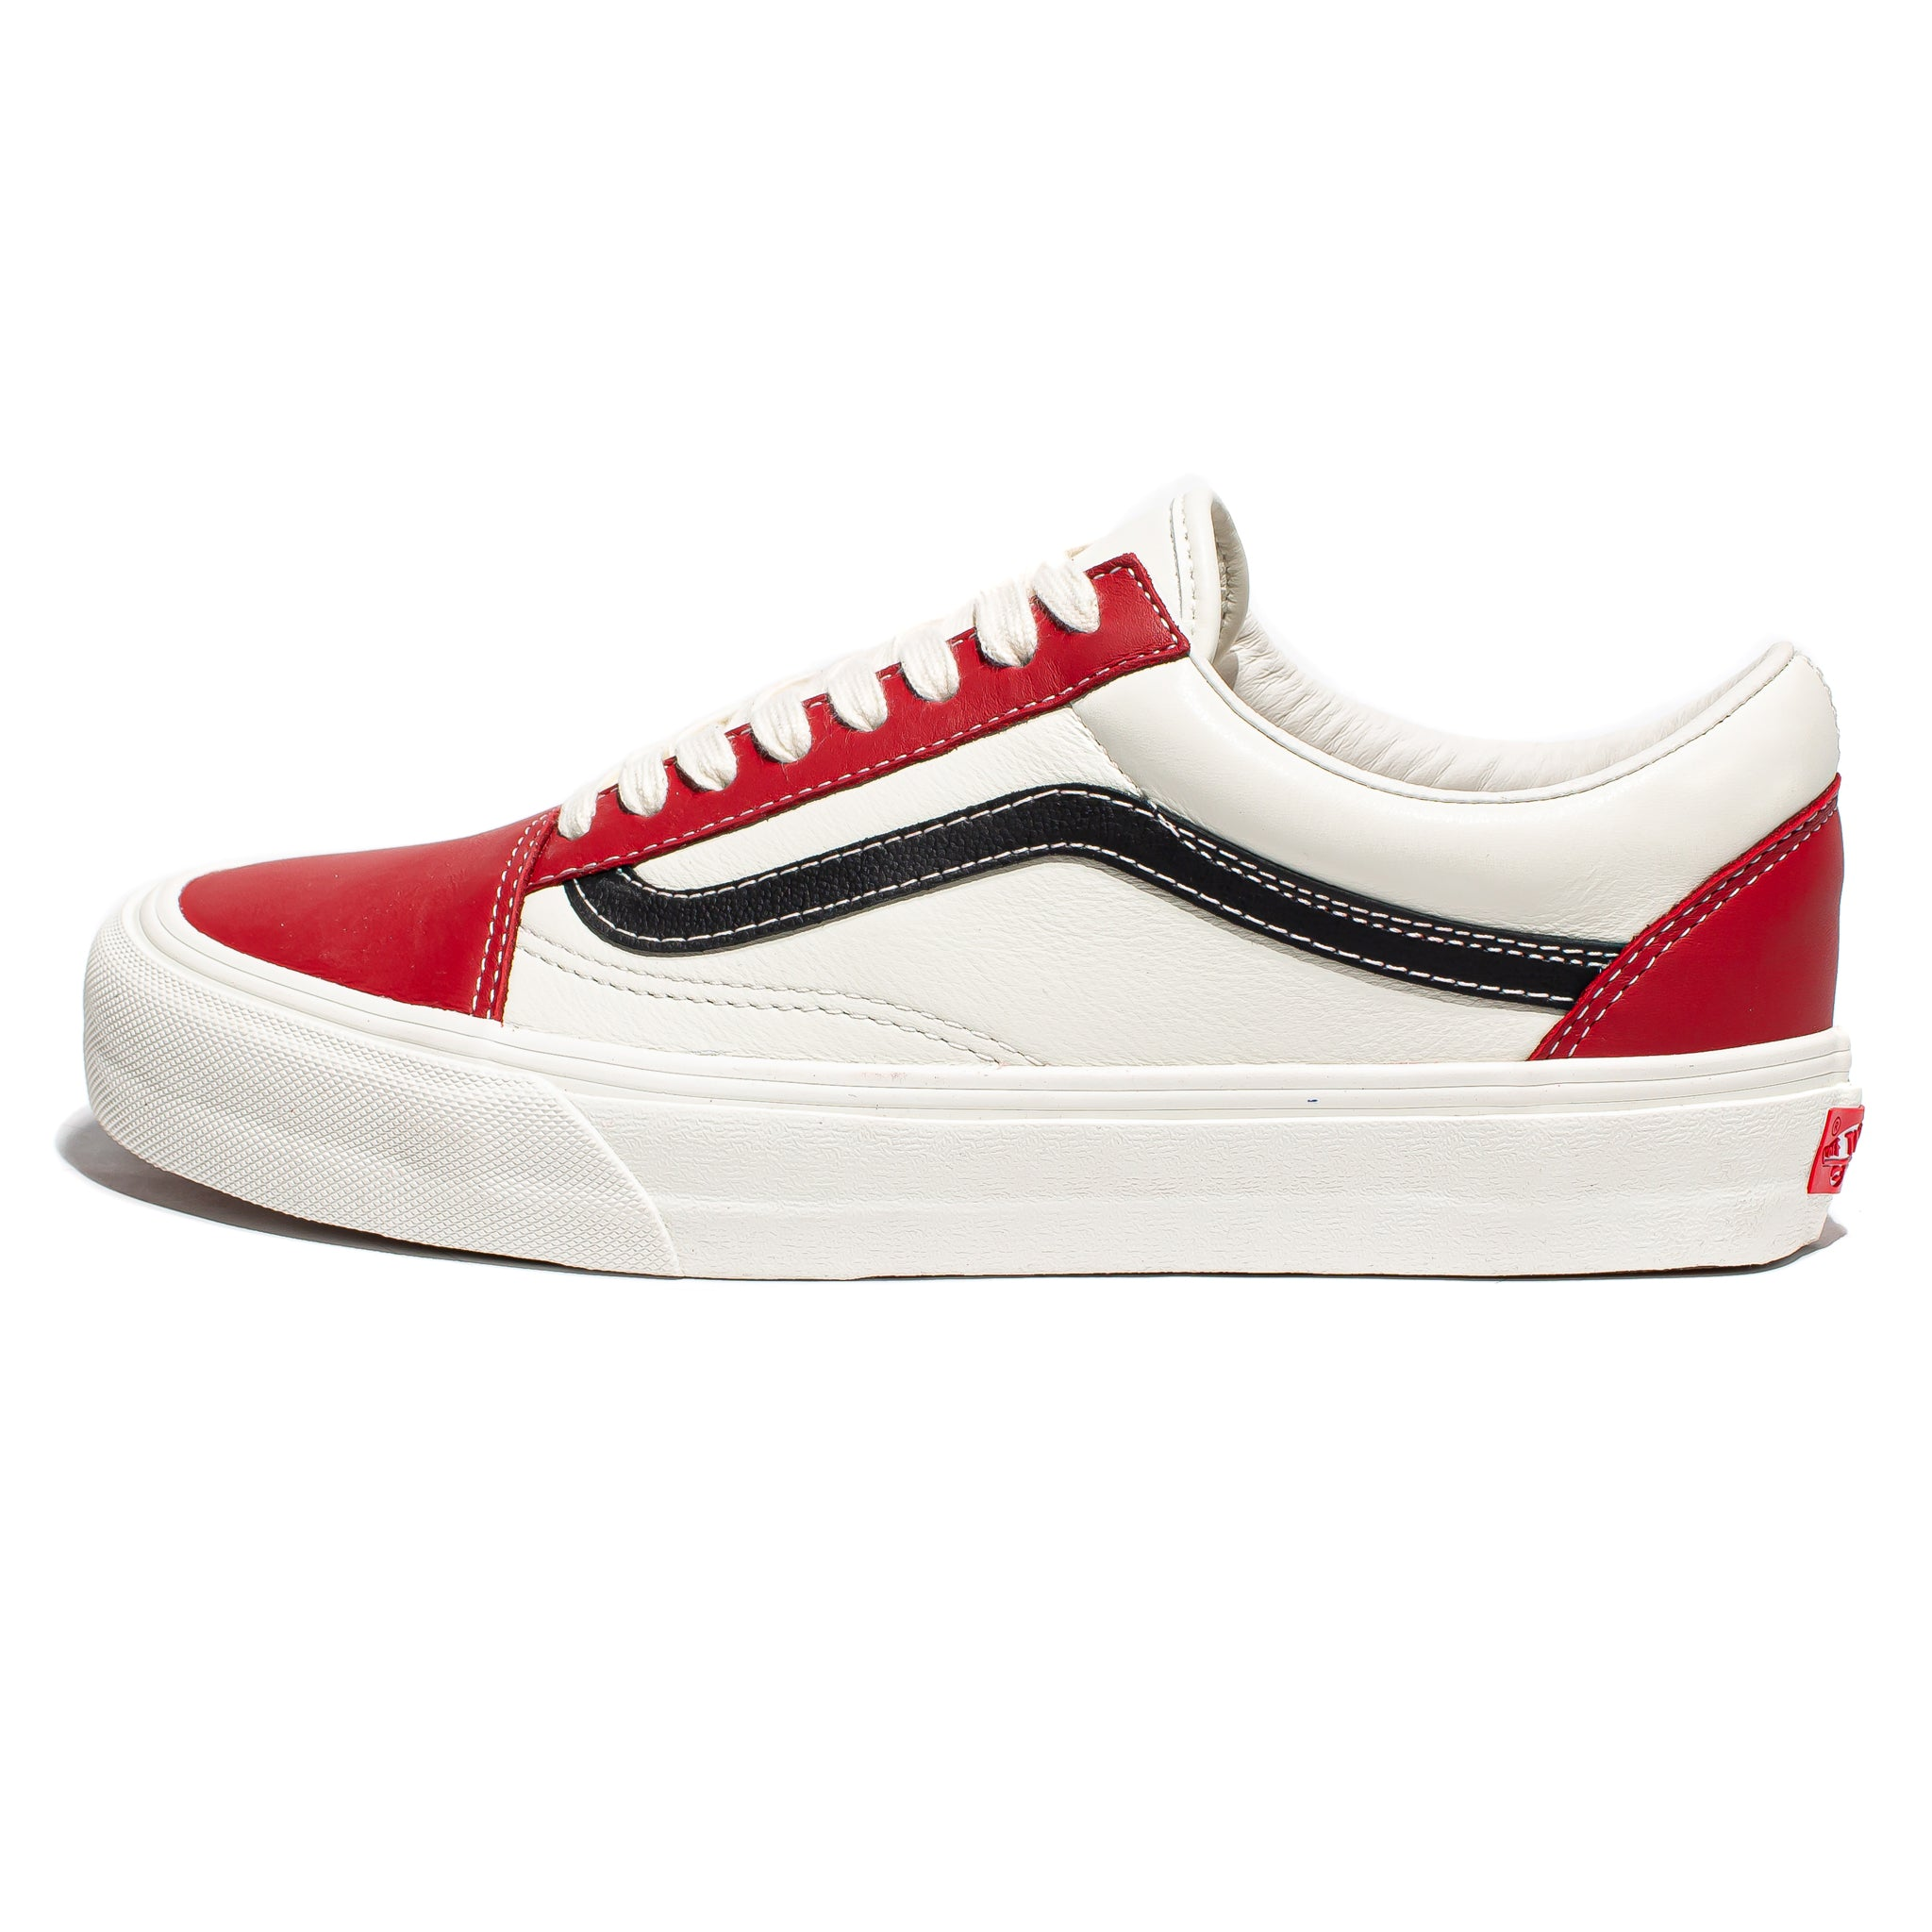 Vans Vault Old Skool VLT LX Chili Pepper/Black